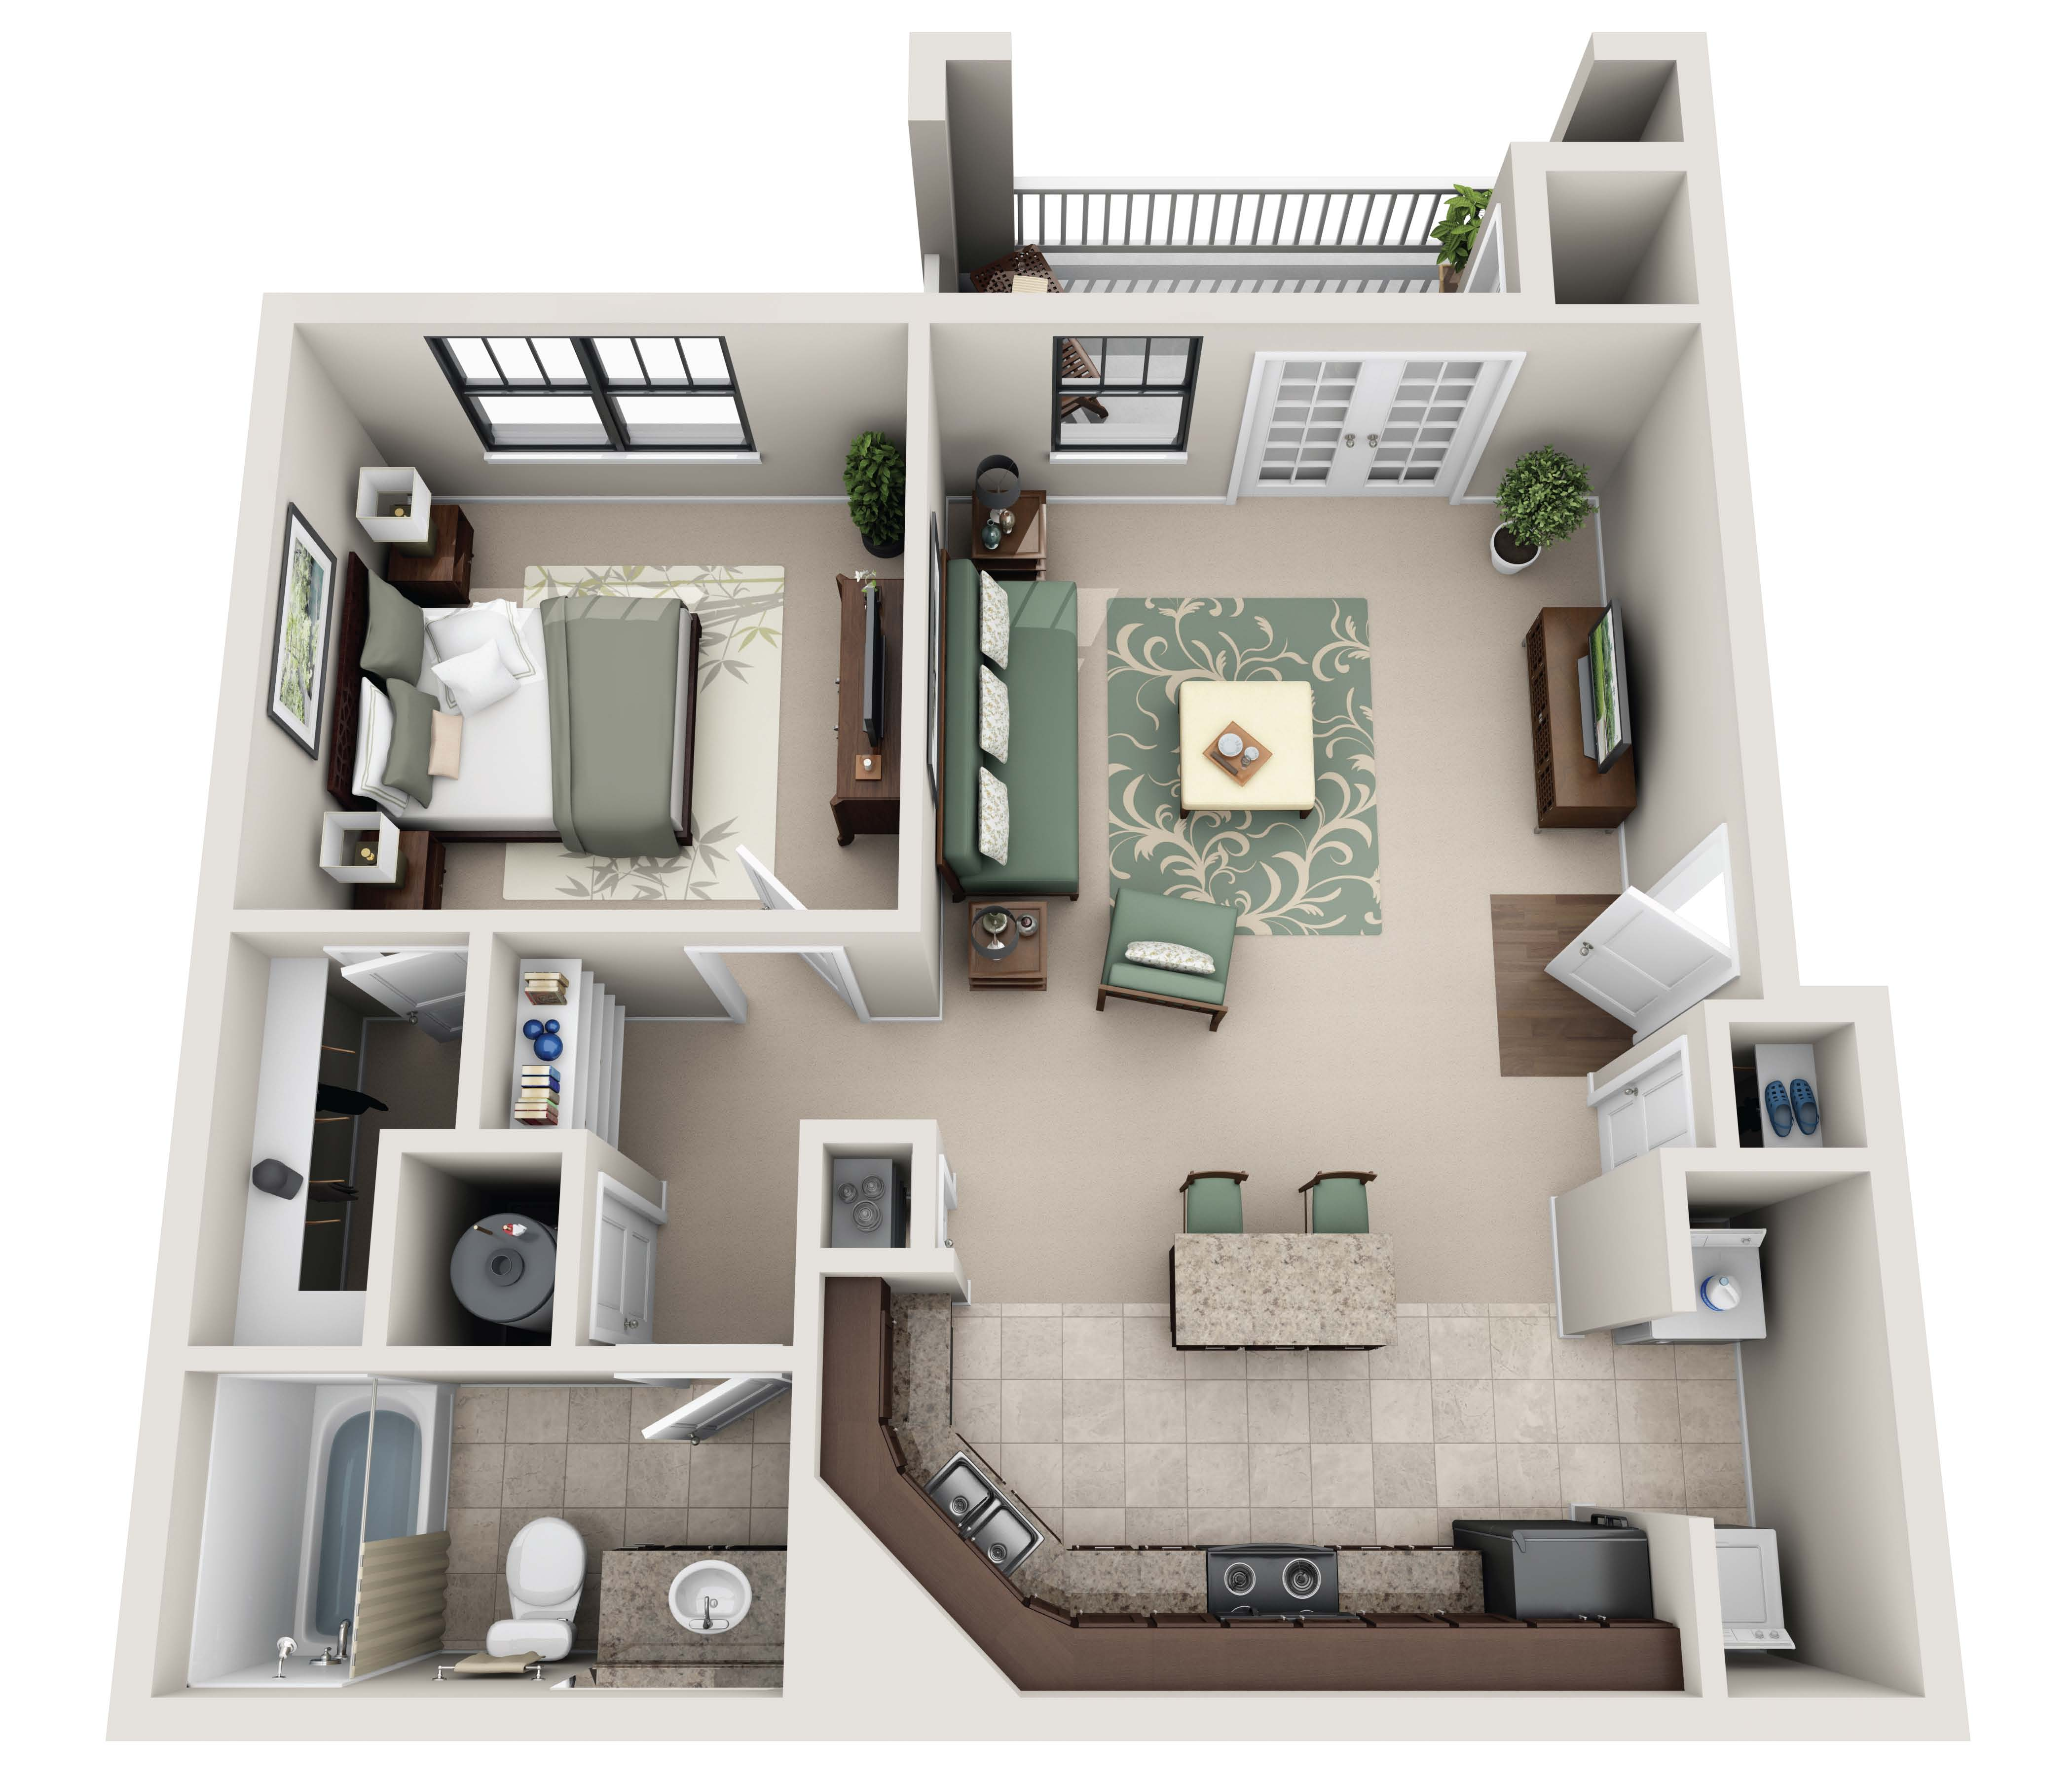 Fetching Tn One Bedroom Apartment Plans Sq M 1 Bedroom Apartment Plans 3d Rent Richland Falls Apartments Serenity One Bedroom Apartments curbed One Bedroom Apartment Floor Plans